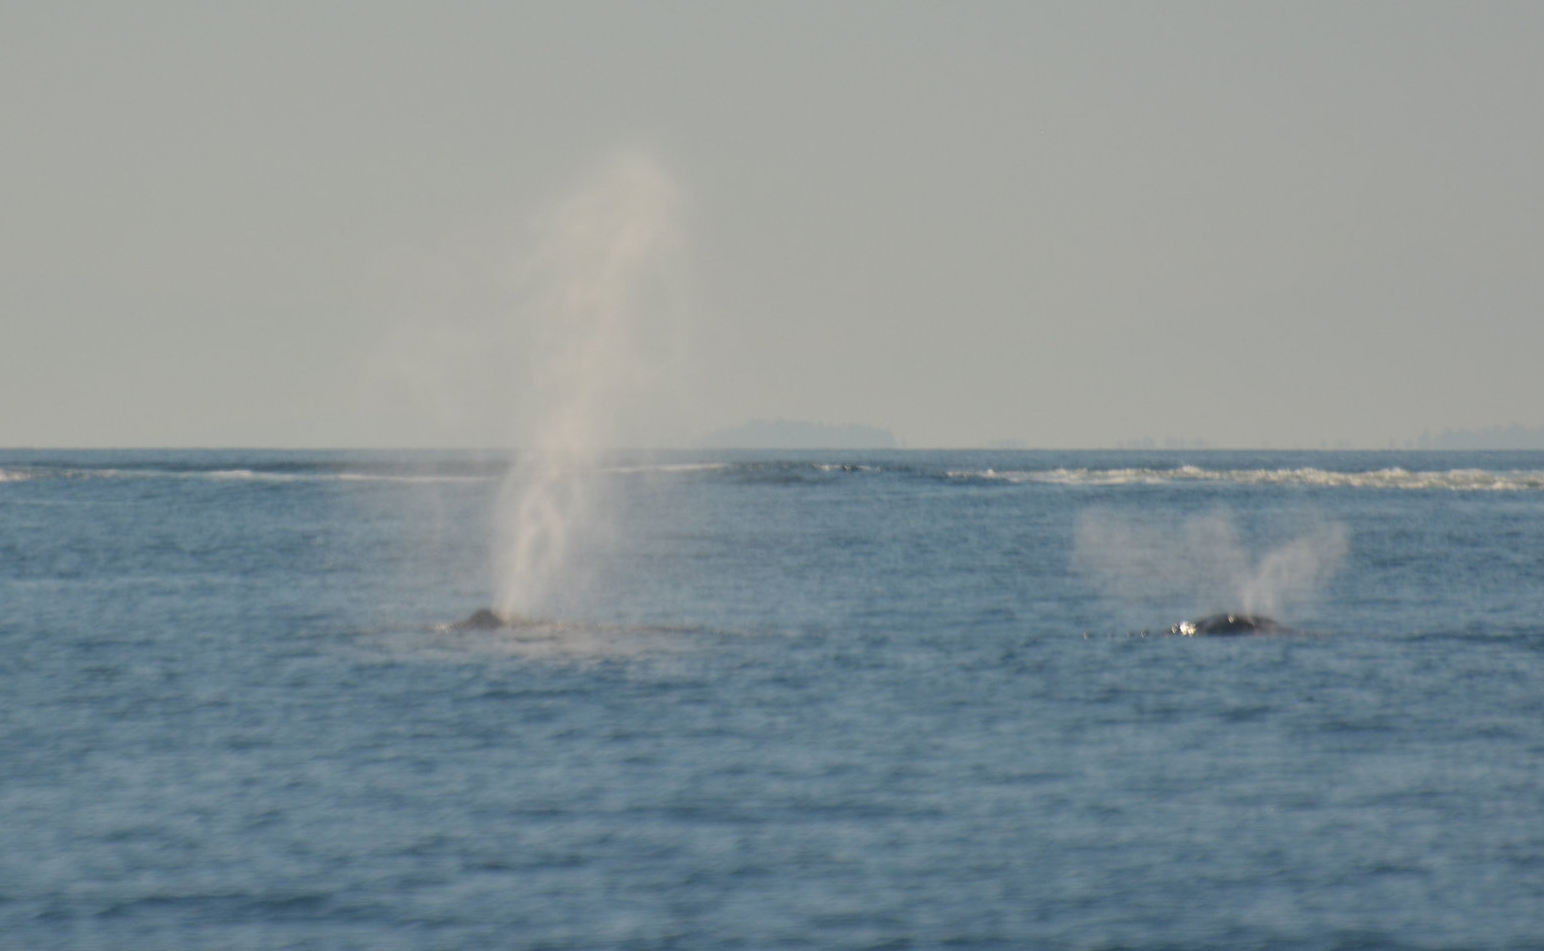 Two humpbacks whales exhale through water in unison. Photo by Alanna Vivani.